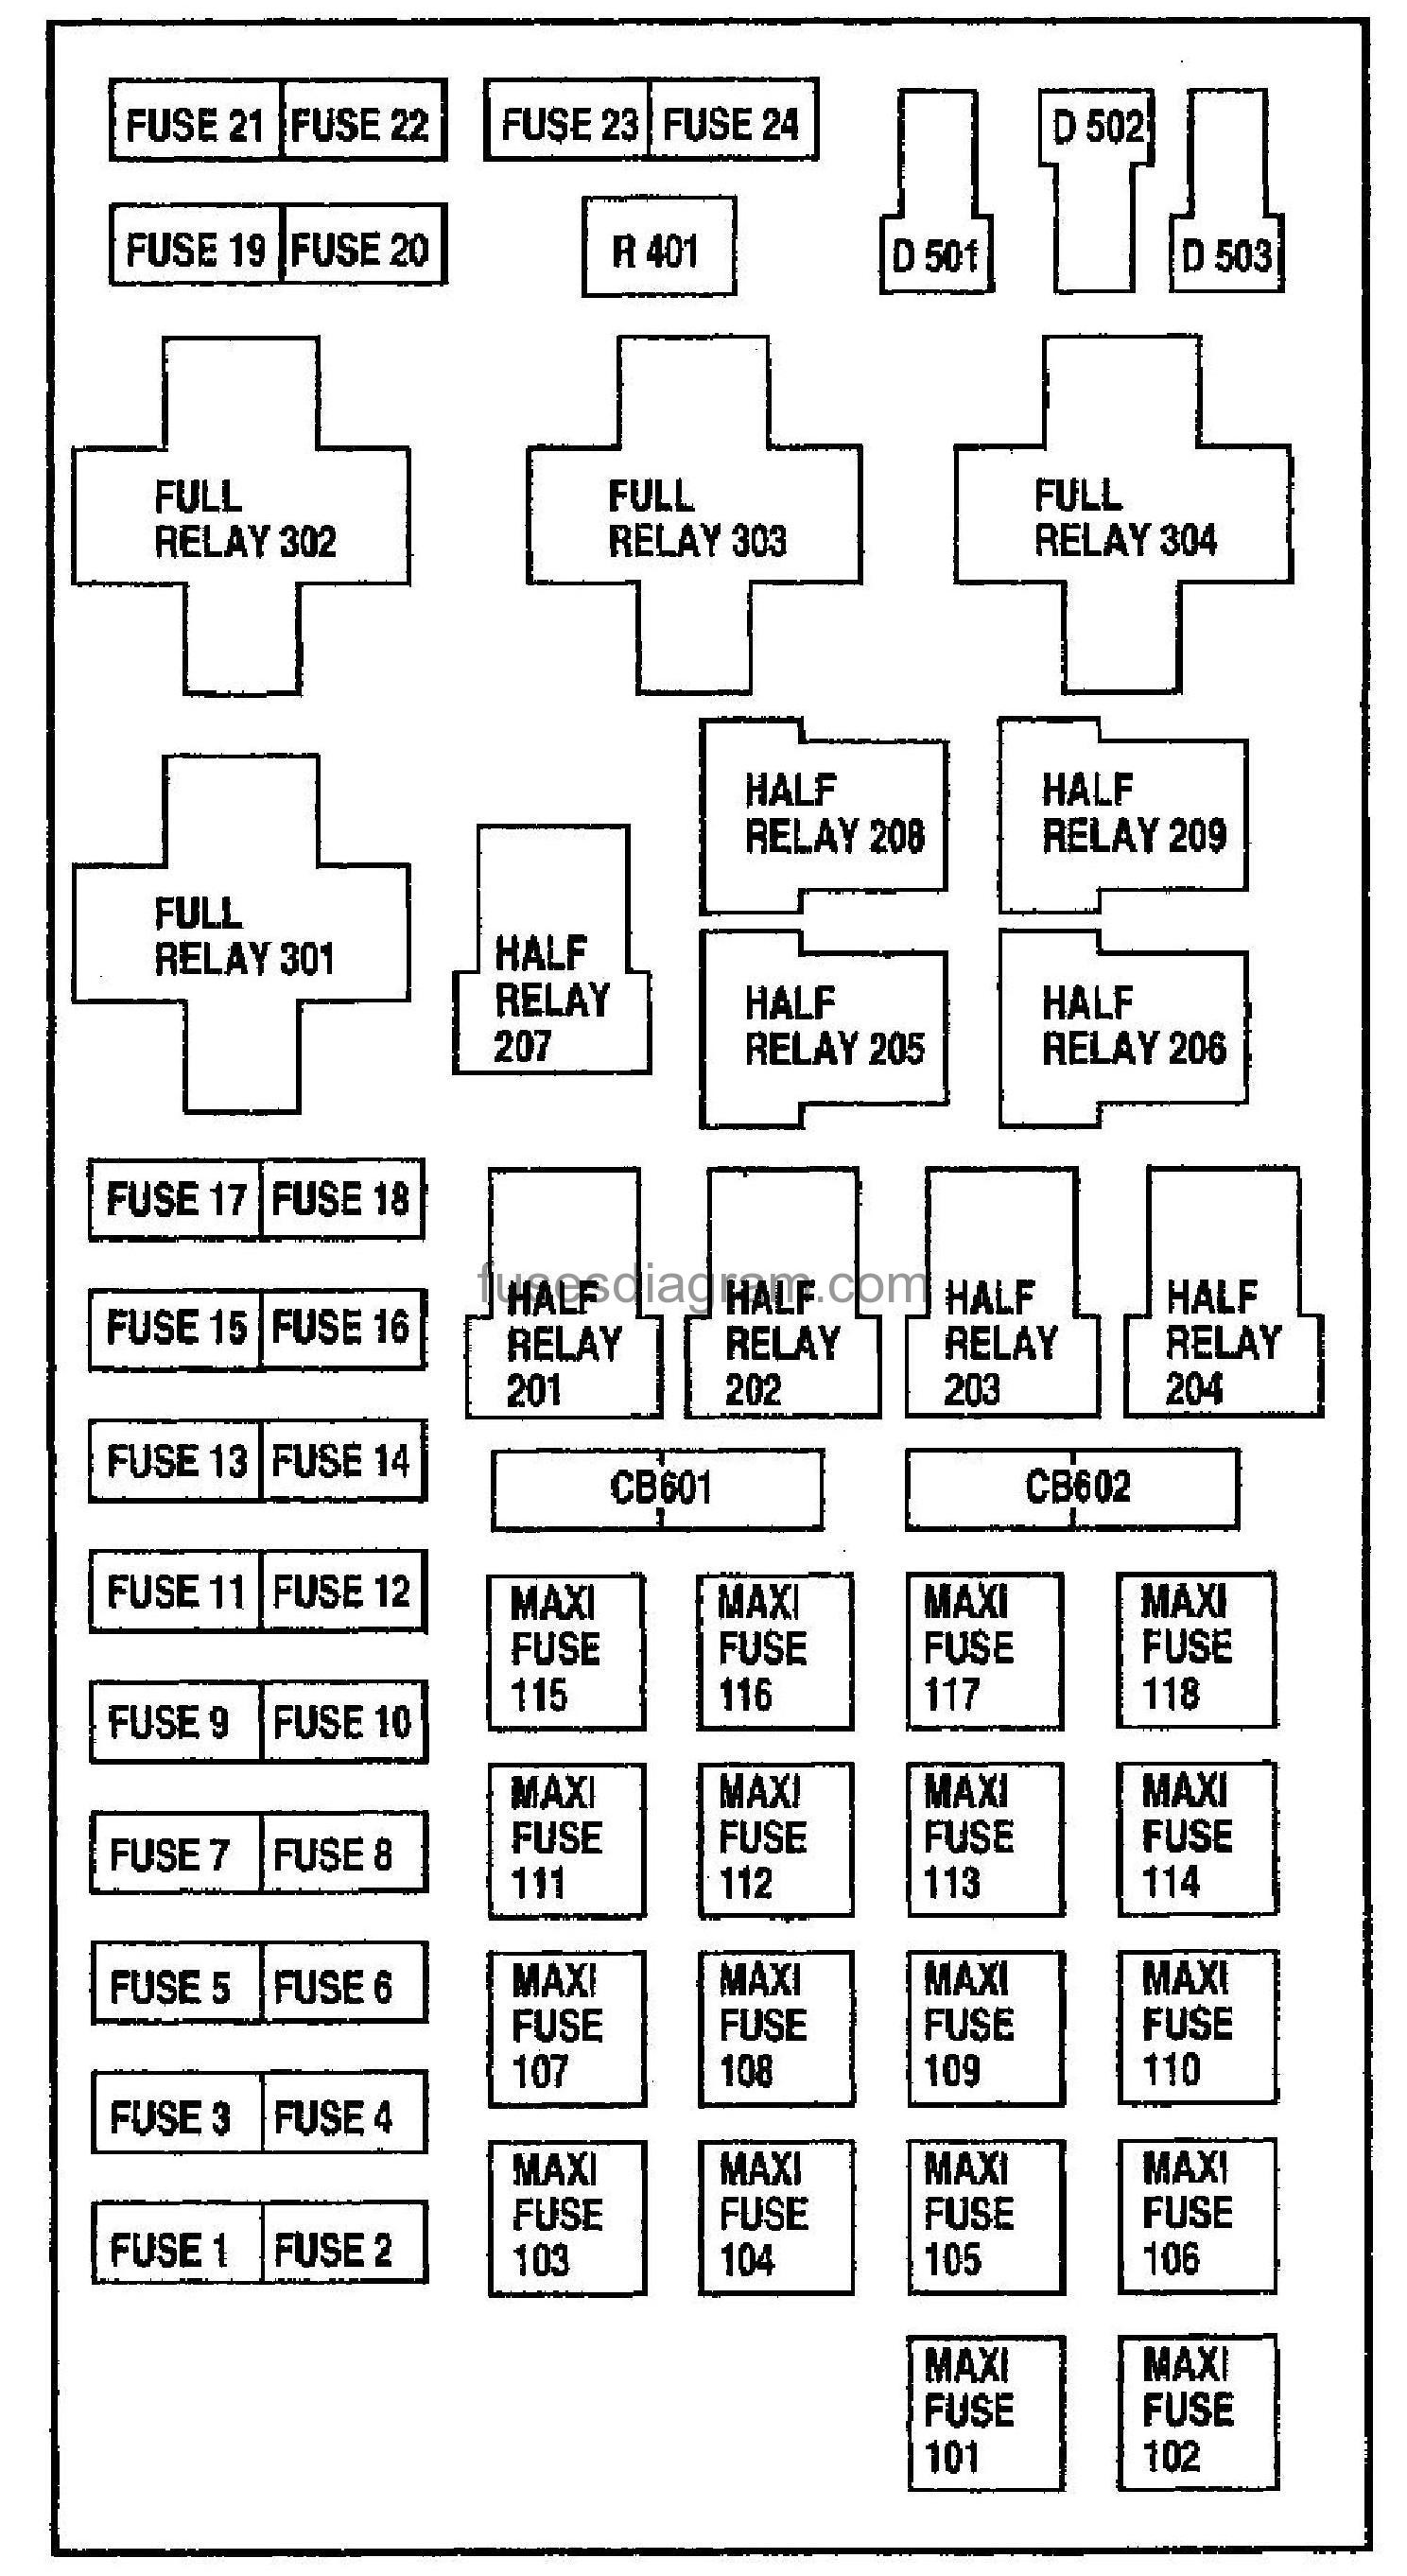 Fuse Diagram for 2001 ford F150 4.2 Liter 2001 ford F150 4x4 Fuse Box Diagram Wiring Diagram